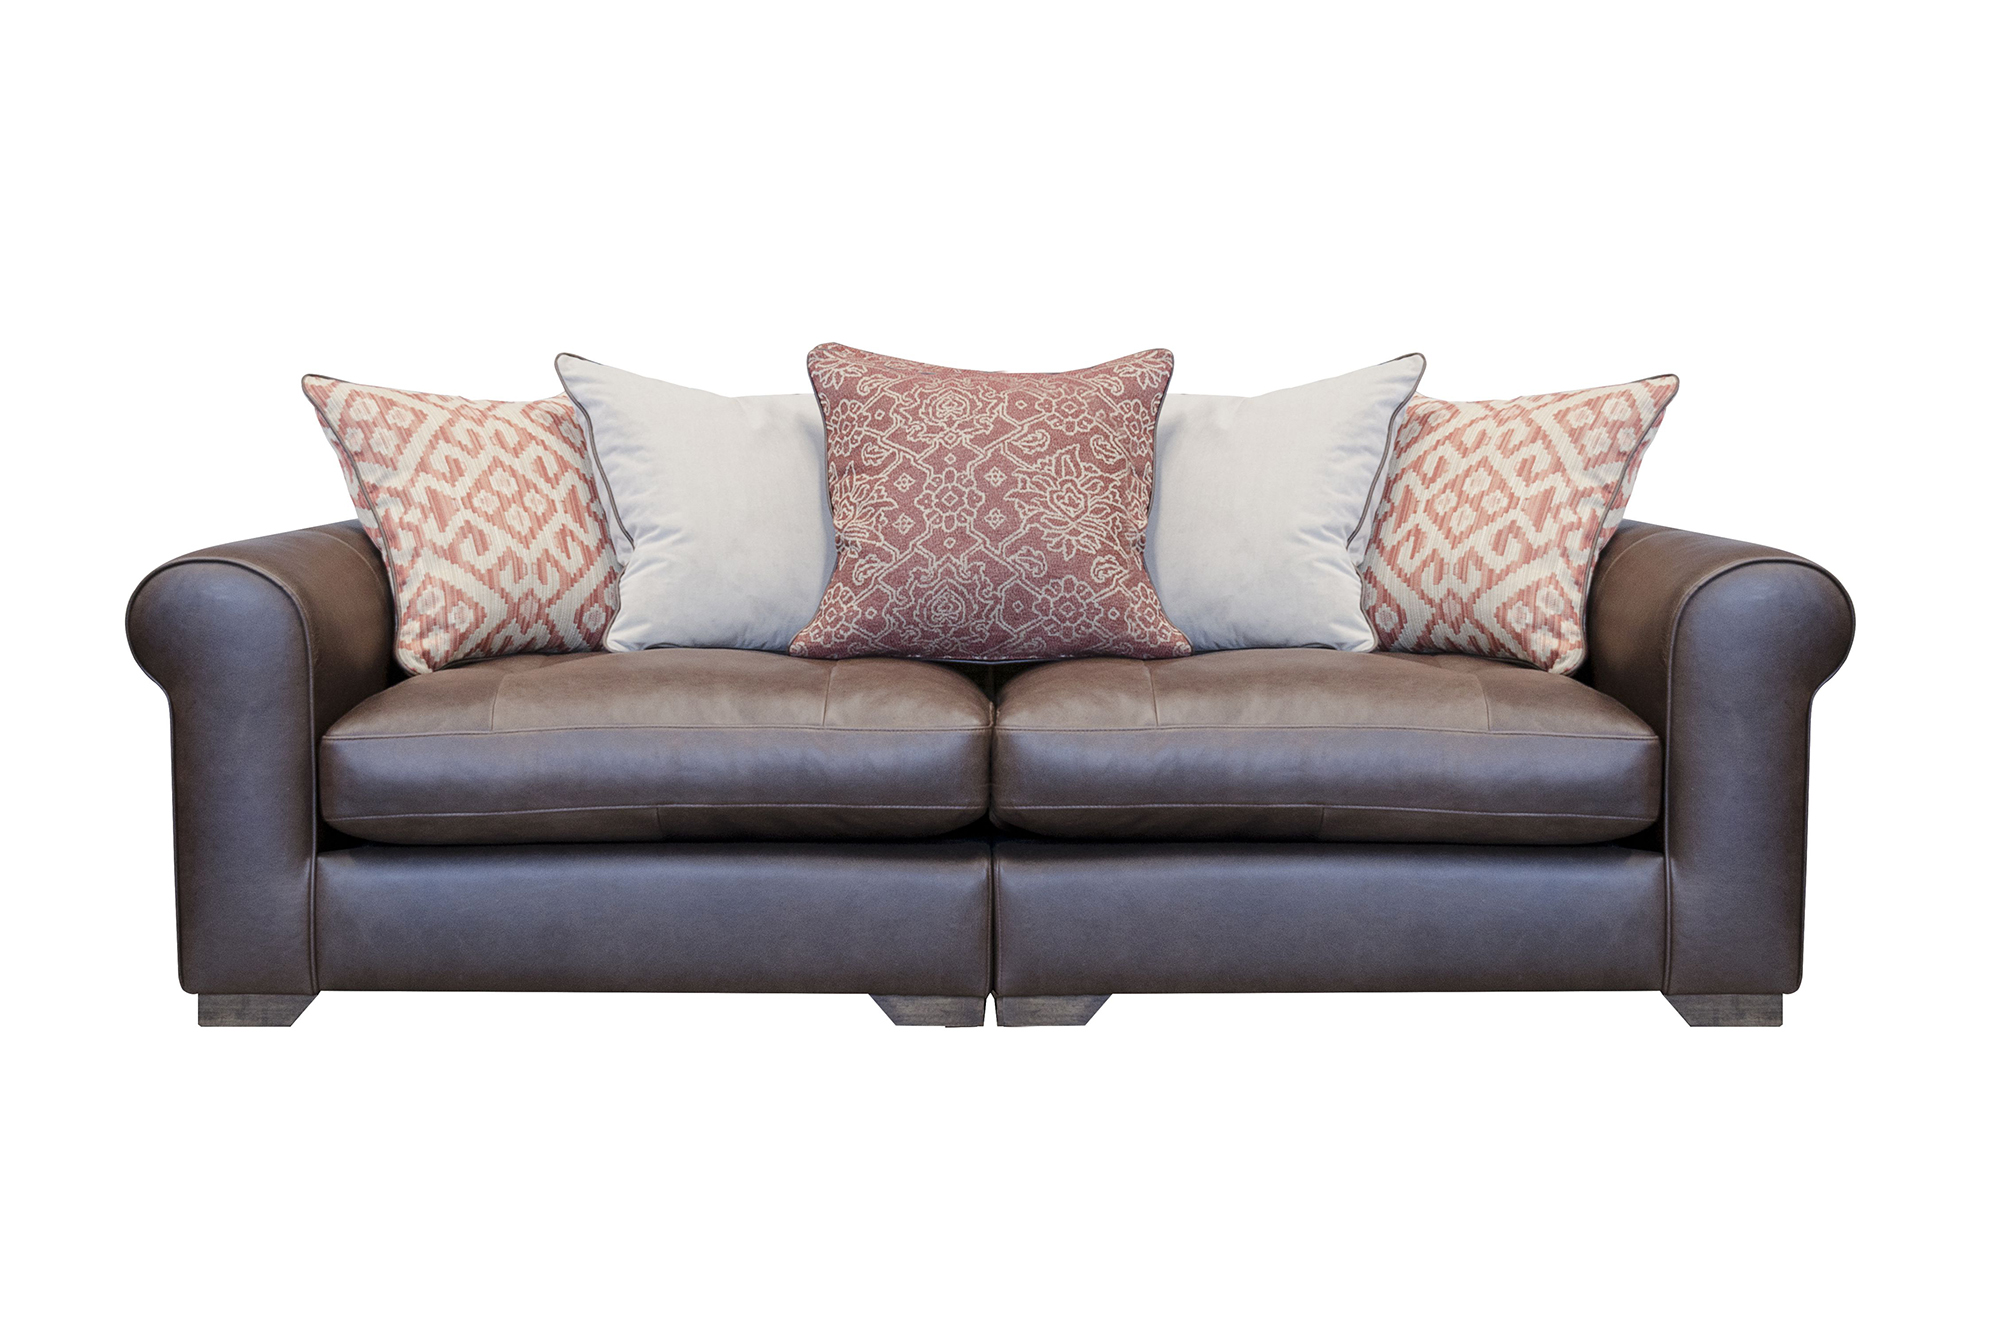 Pemberley Maxi Split Sofa Shown in Indiana Tan with Fabric Option 1